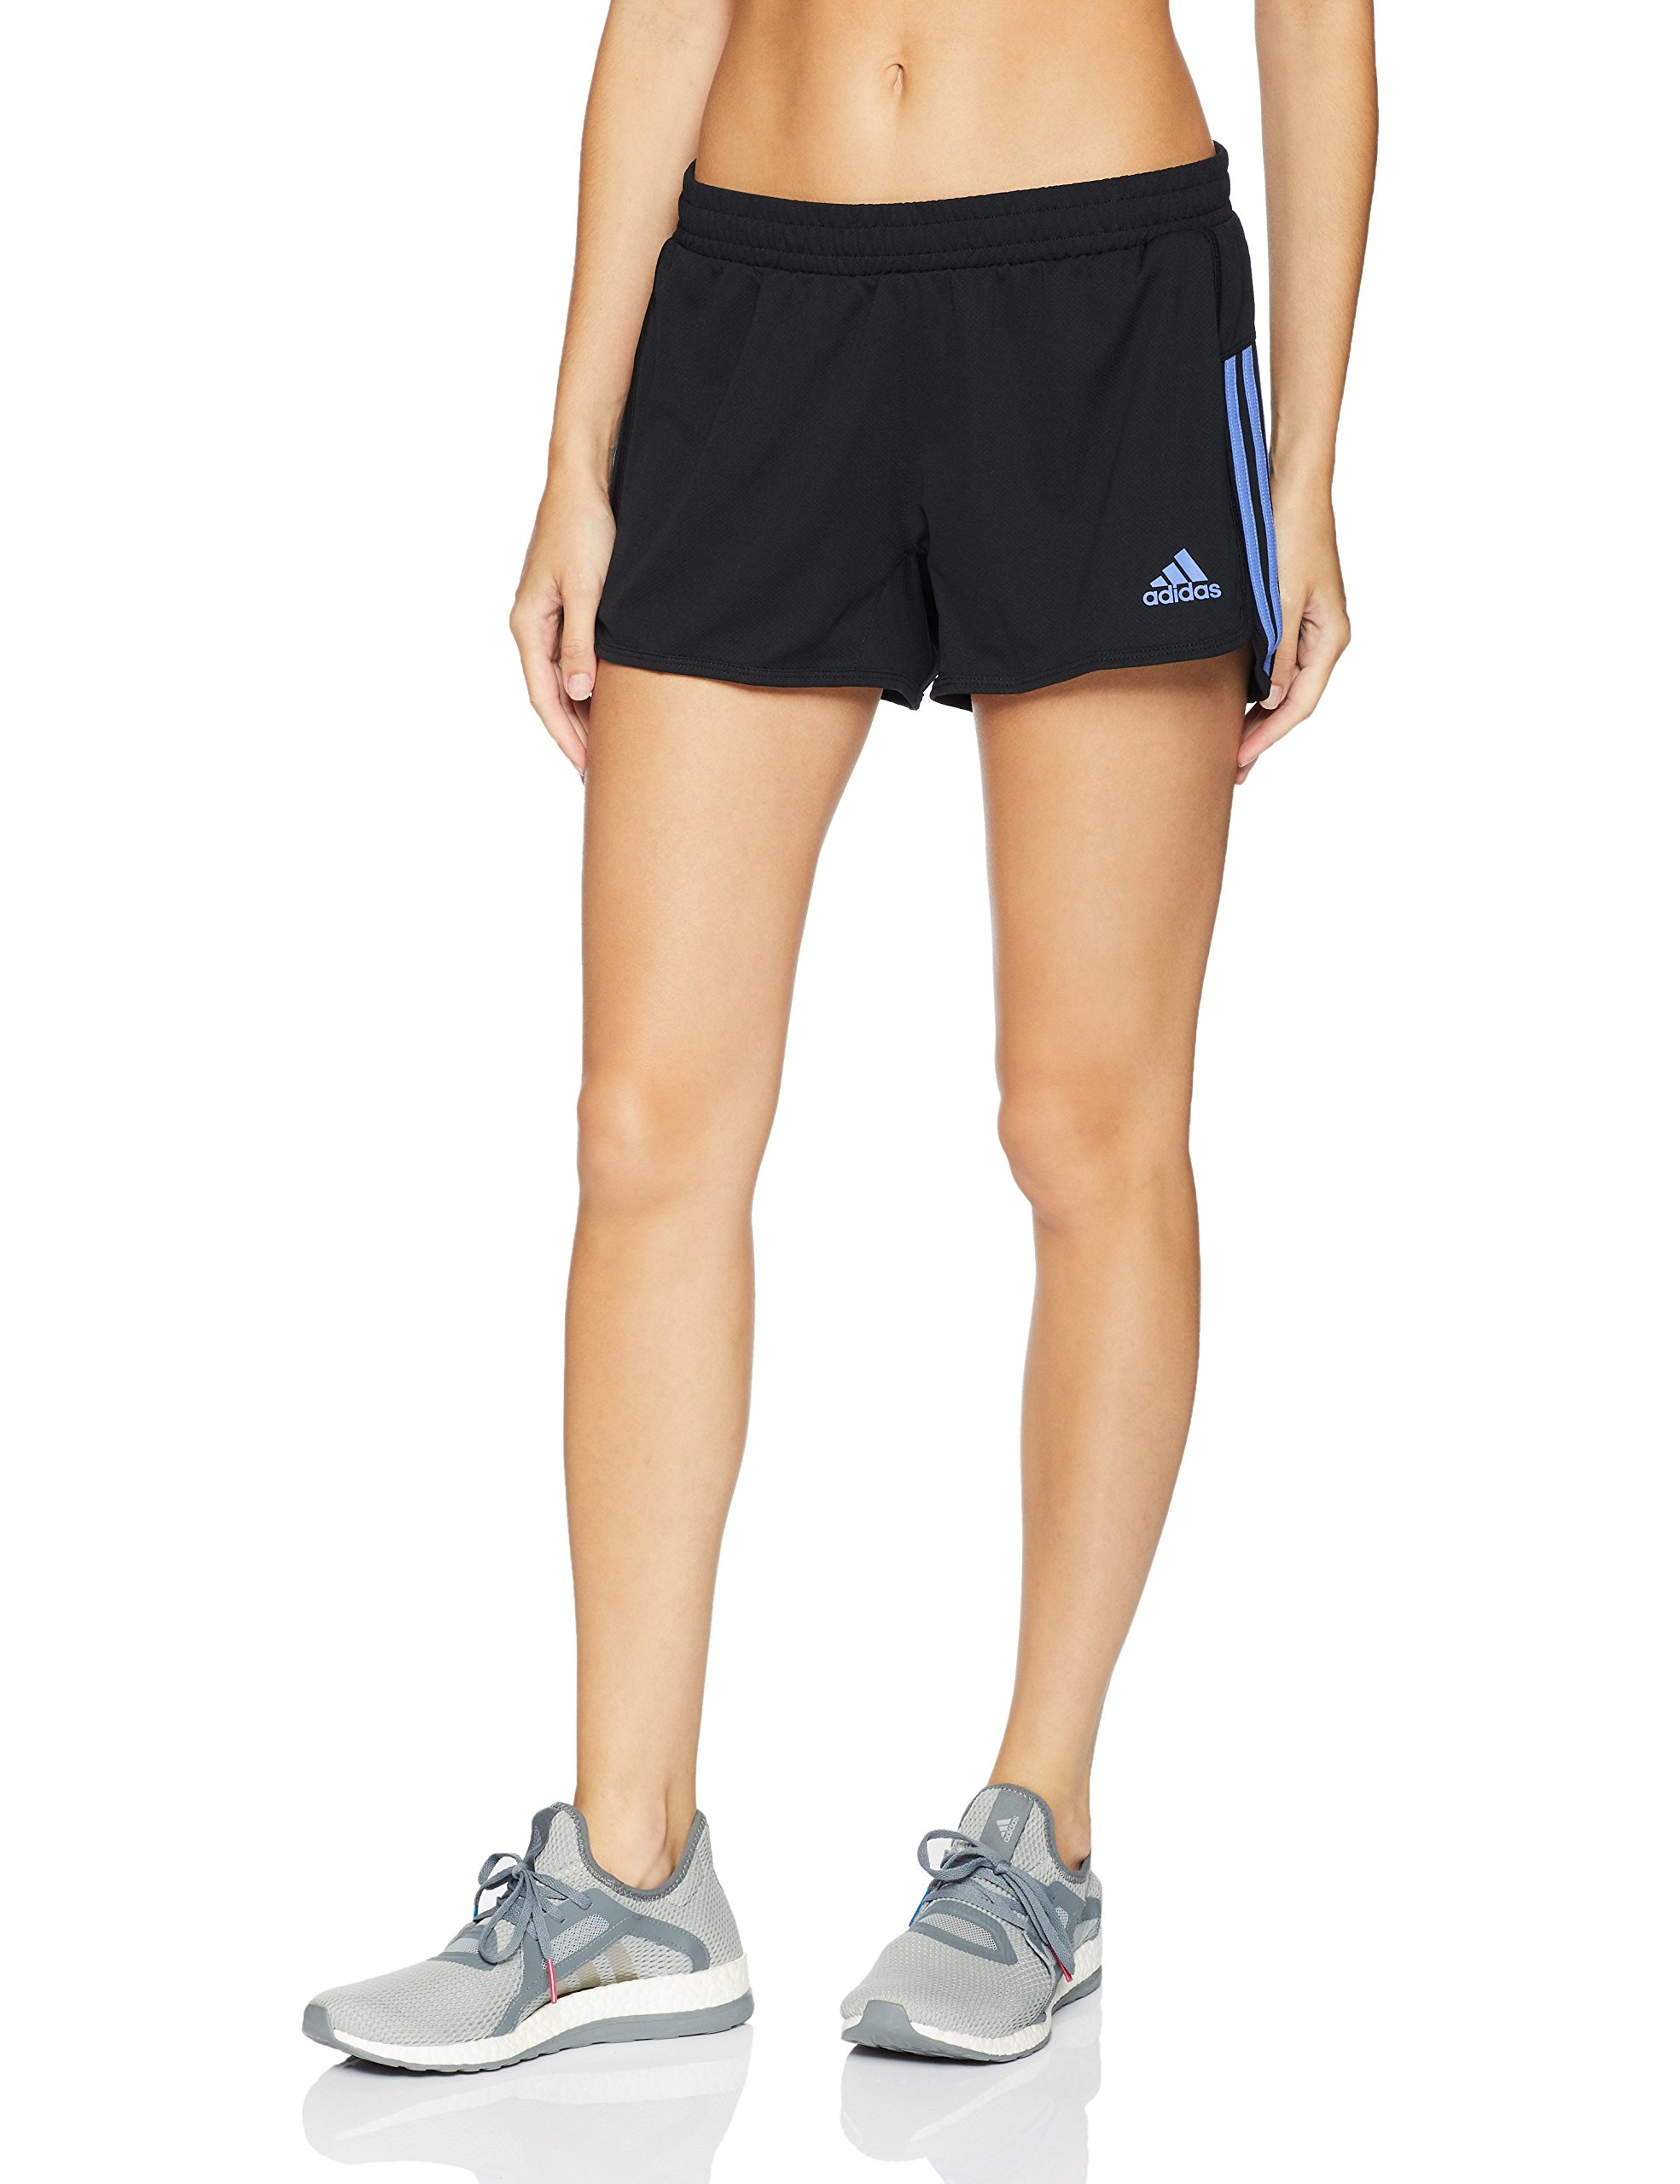 adidas Women's Training Designed-2-move Knit Short, Black/Real Lilac, X-Small by adidas